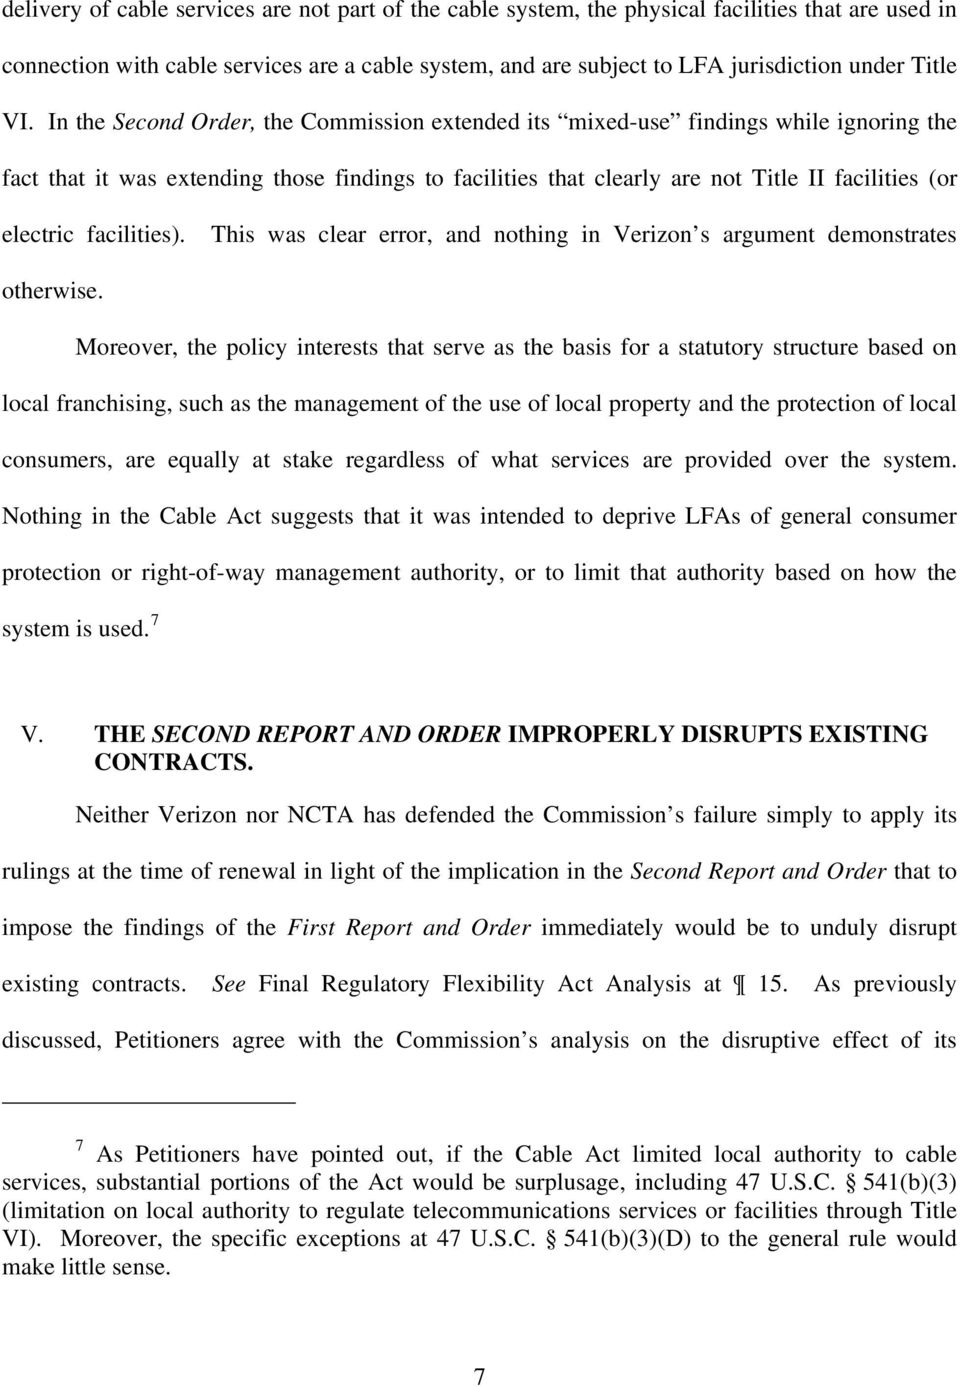 In the Second Order, the Commission extended its mixed-use findings while ignoring the fact that it was extending those findings to facilities that clearly are not Title II facilities (or electric